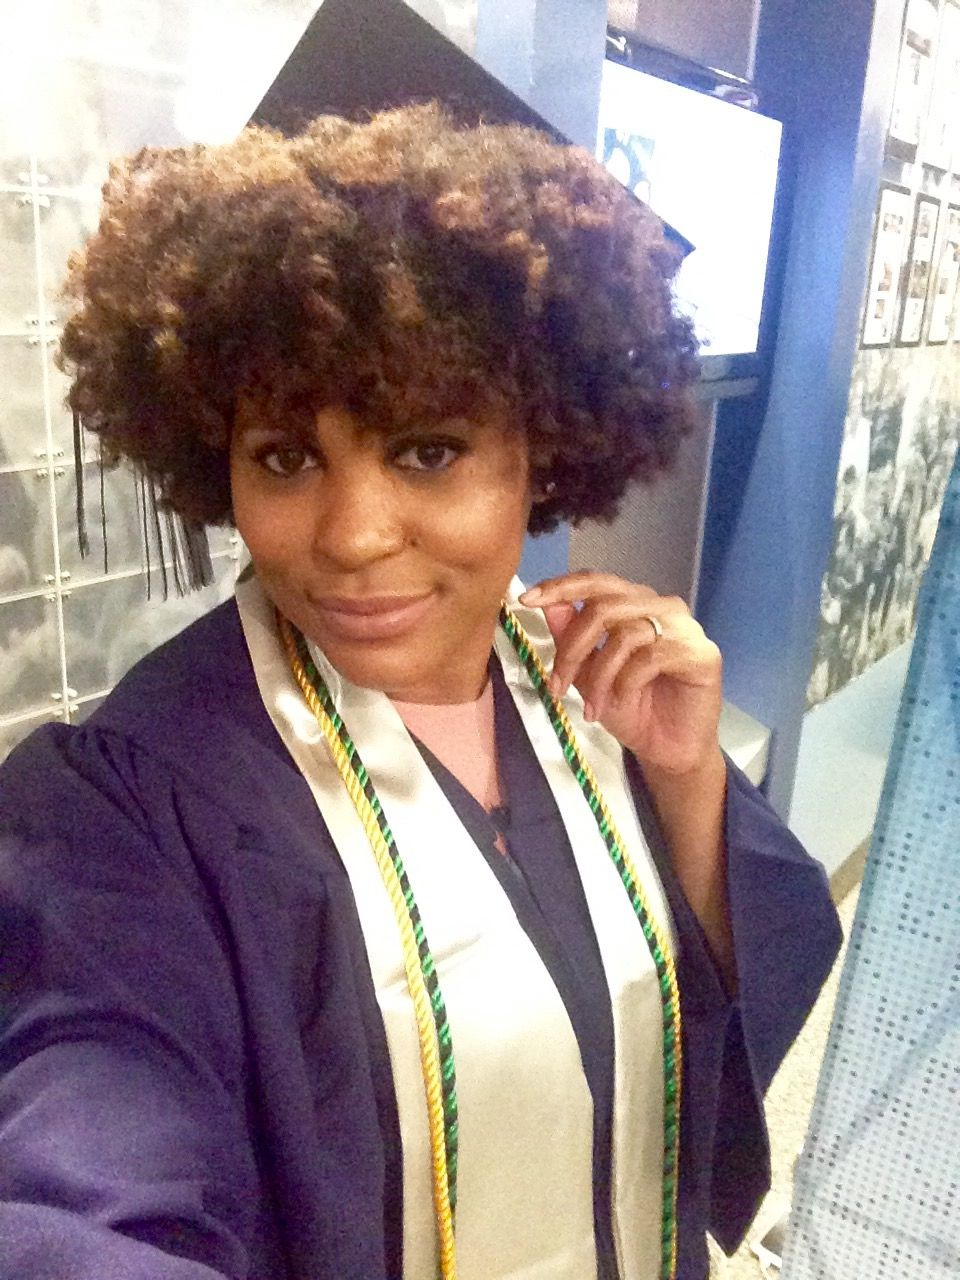 Natural hair with cap and gown | My Natural | Pinterest | Natural ...